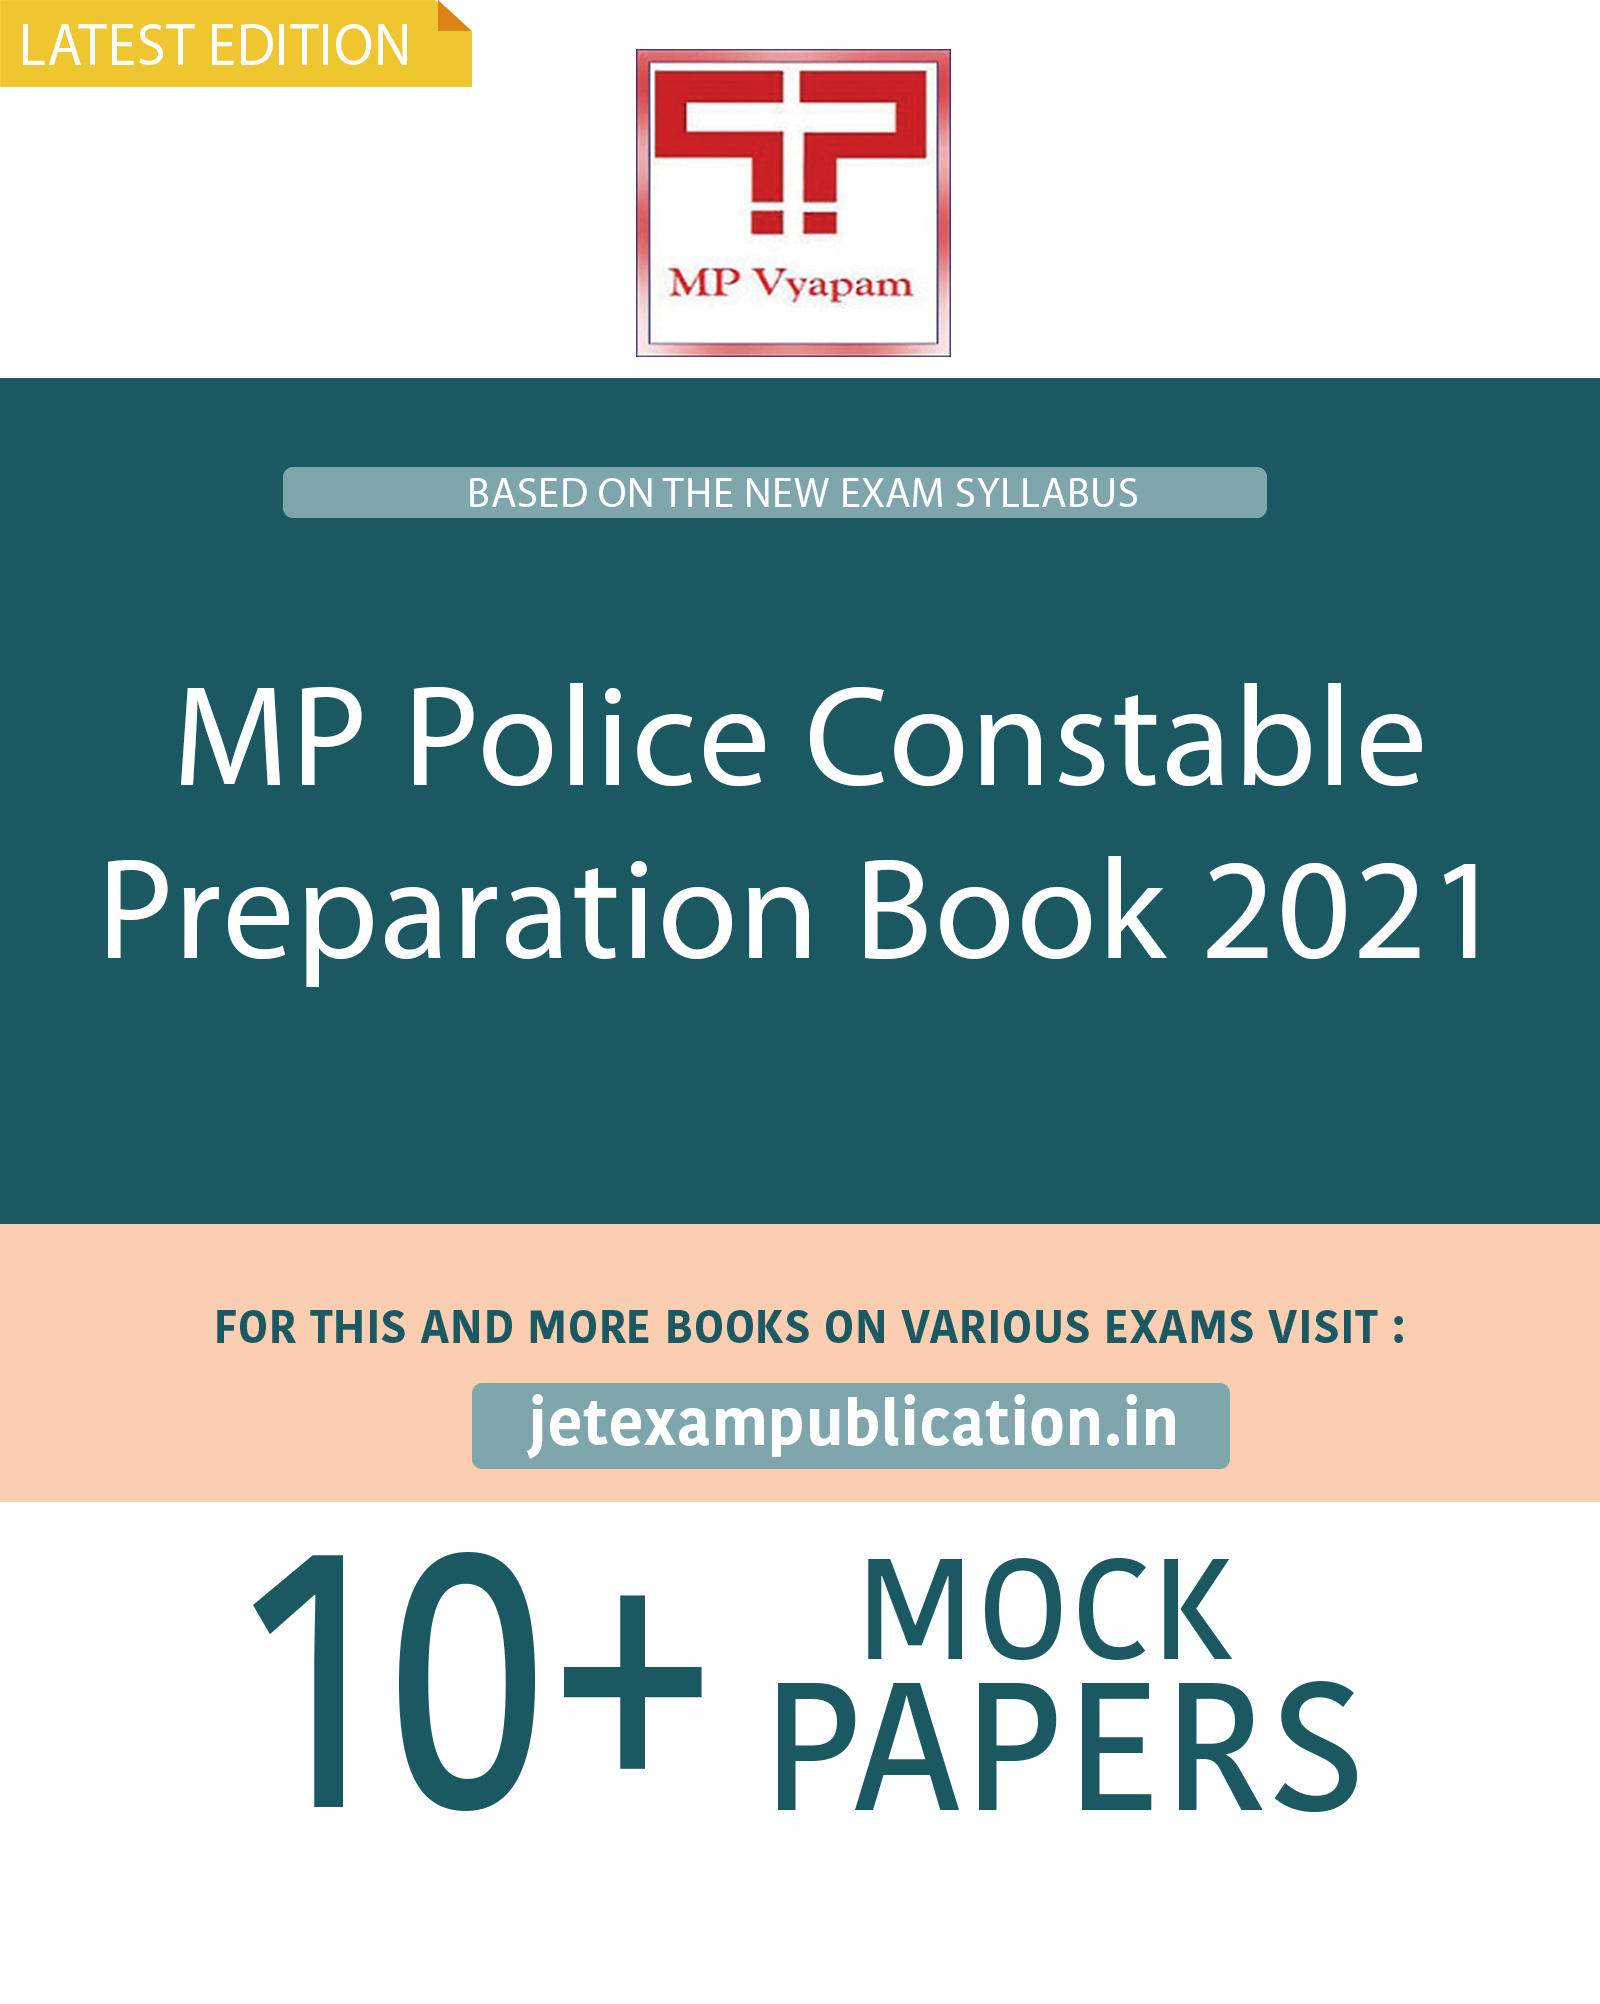 MP Police Constable Mock Test 2021